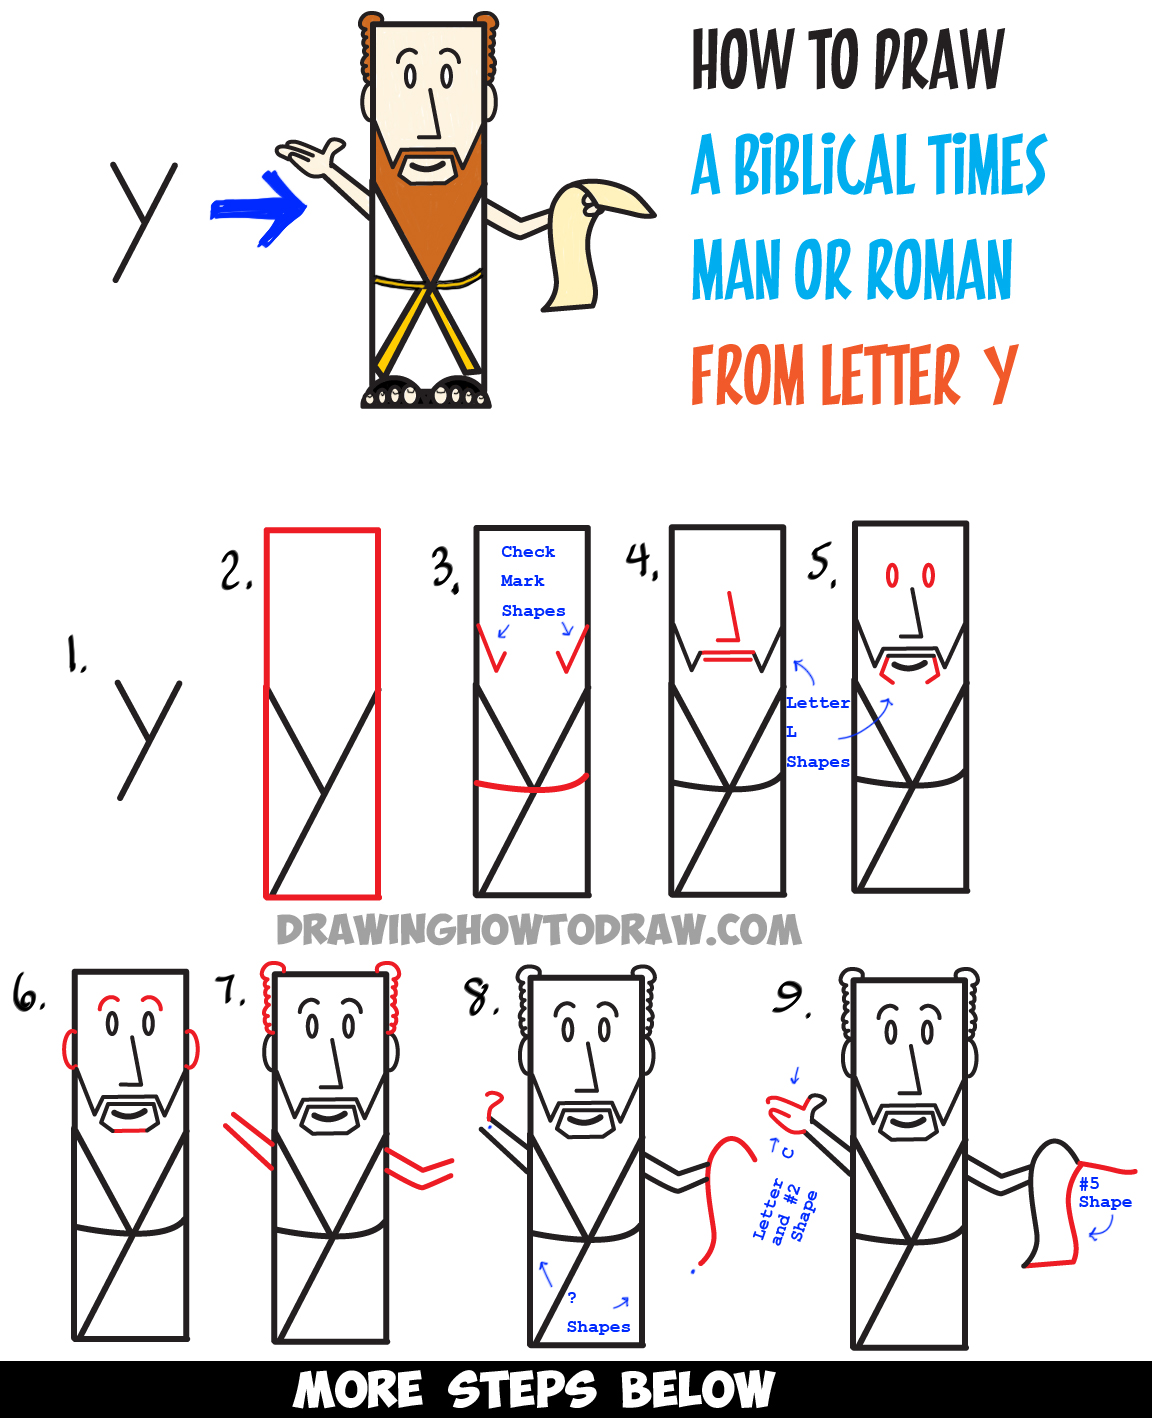 How to Draw a Man from Ancient Rome or Biblical Times from Letter Y